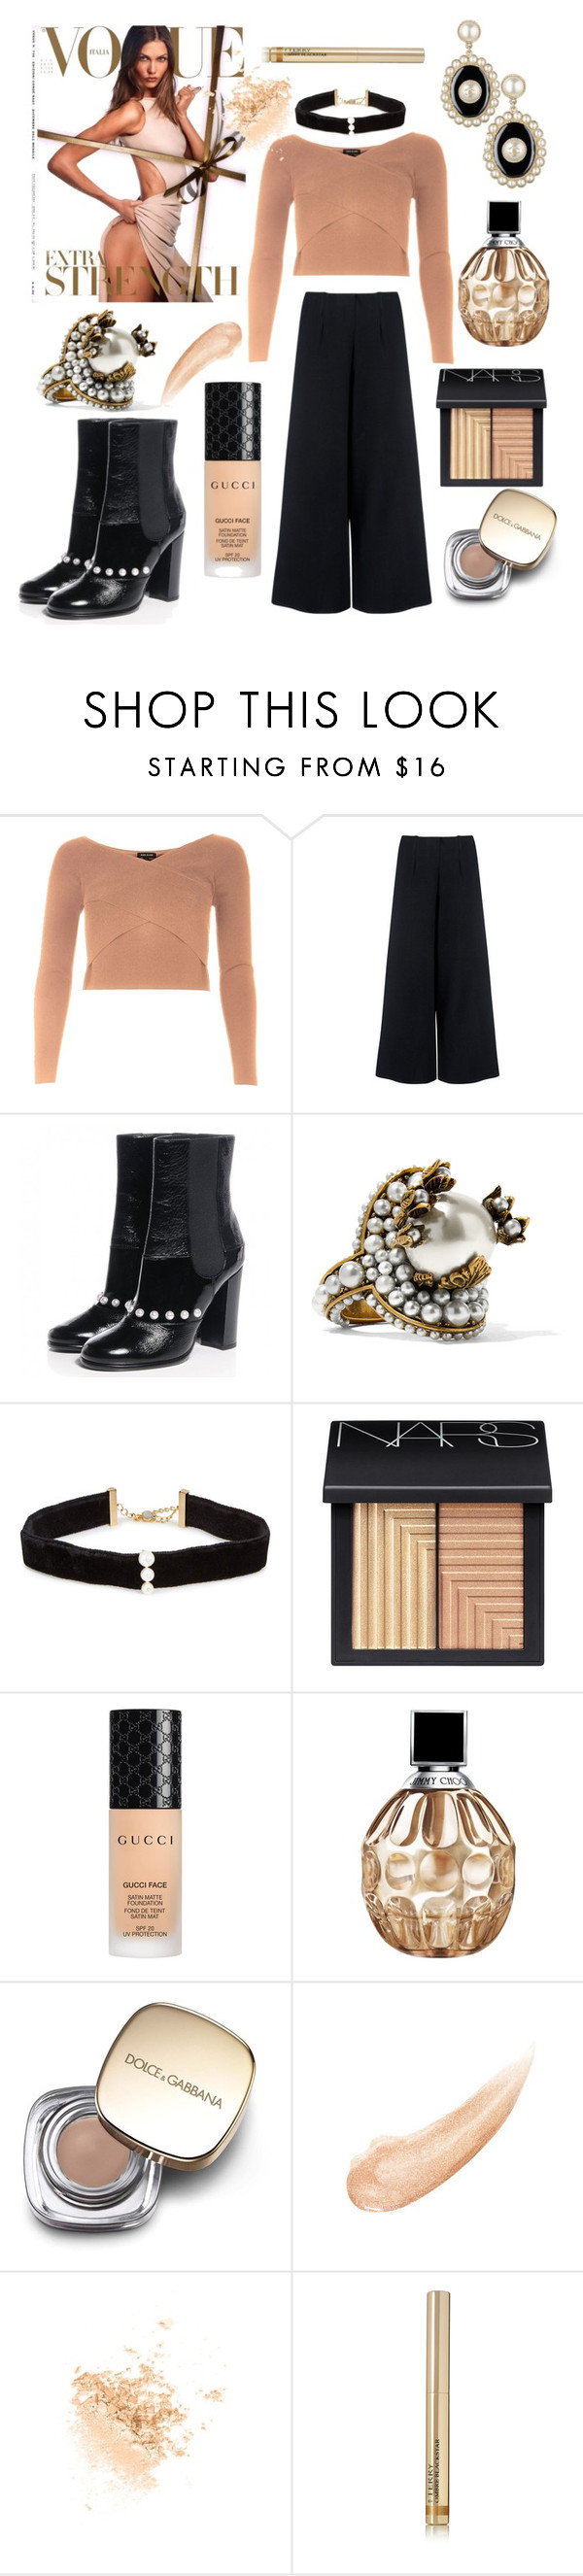 """""""Knitwear"""" by mandimwpink ❤ liked on Polyvore featuring River Island, C/MEO COLLECTIVE, Chanel, Gucci, Anissa Kermiche, NARS Cosmetics, Jimmy Choo, Dolce&Gabbana, Topshop and By Terry"""